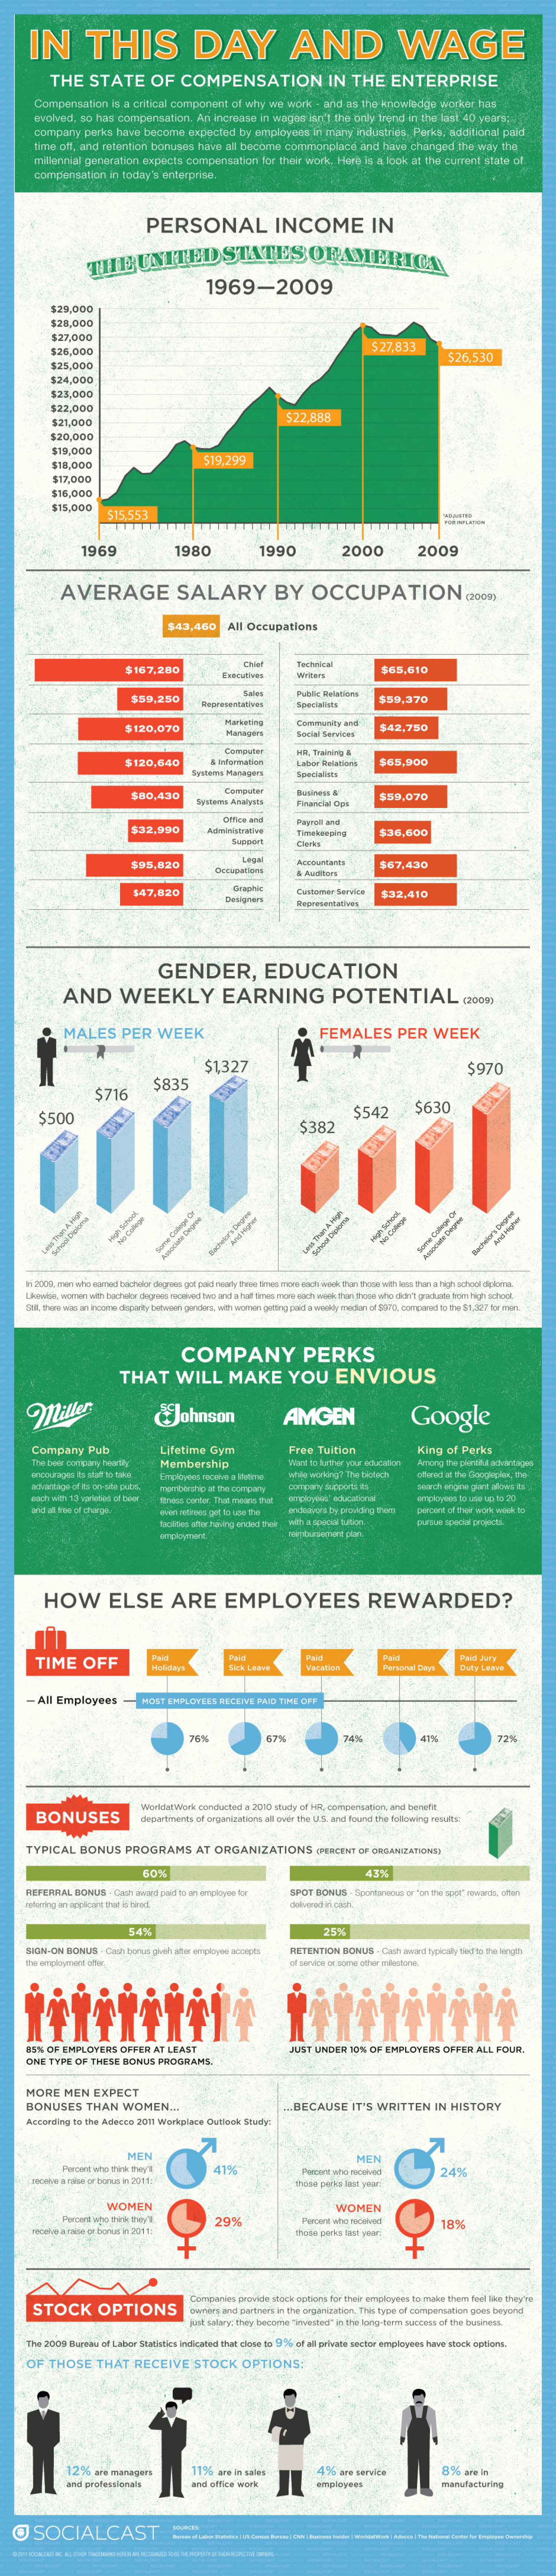 In This Day And Wage Infographic